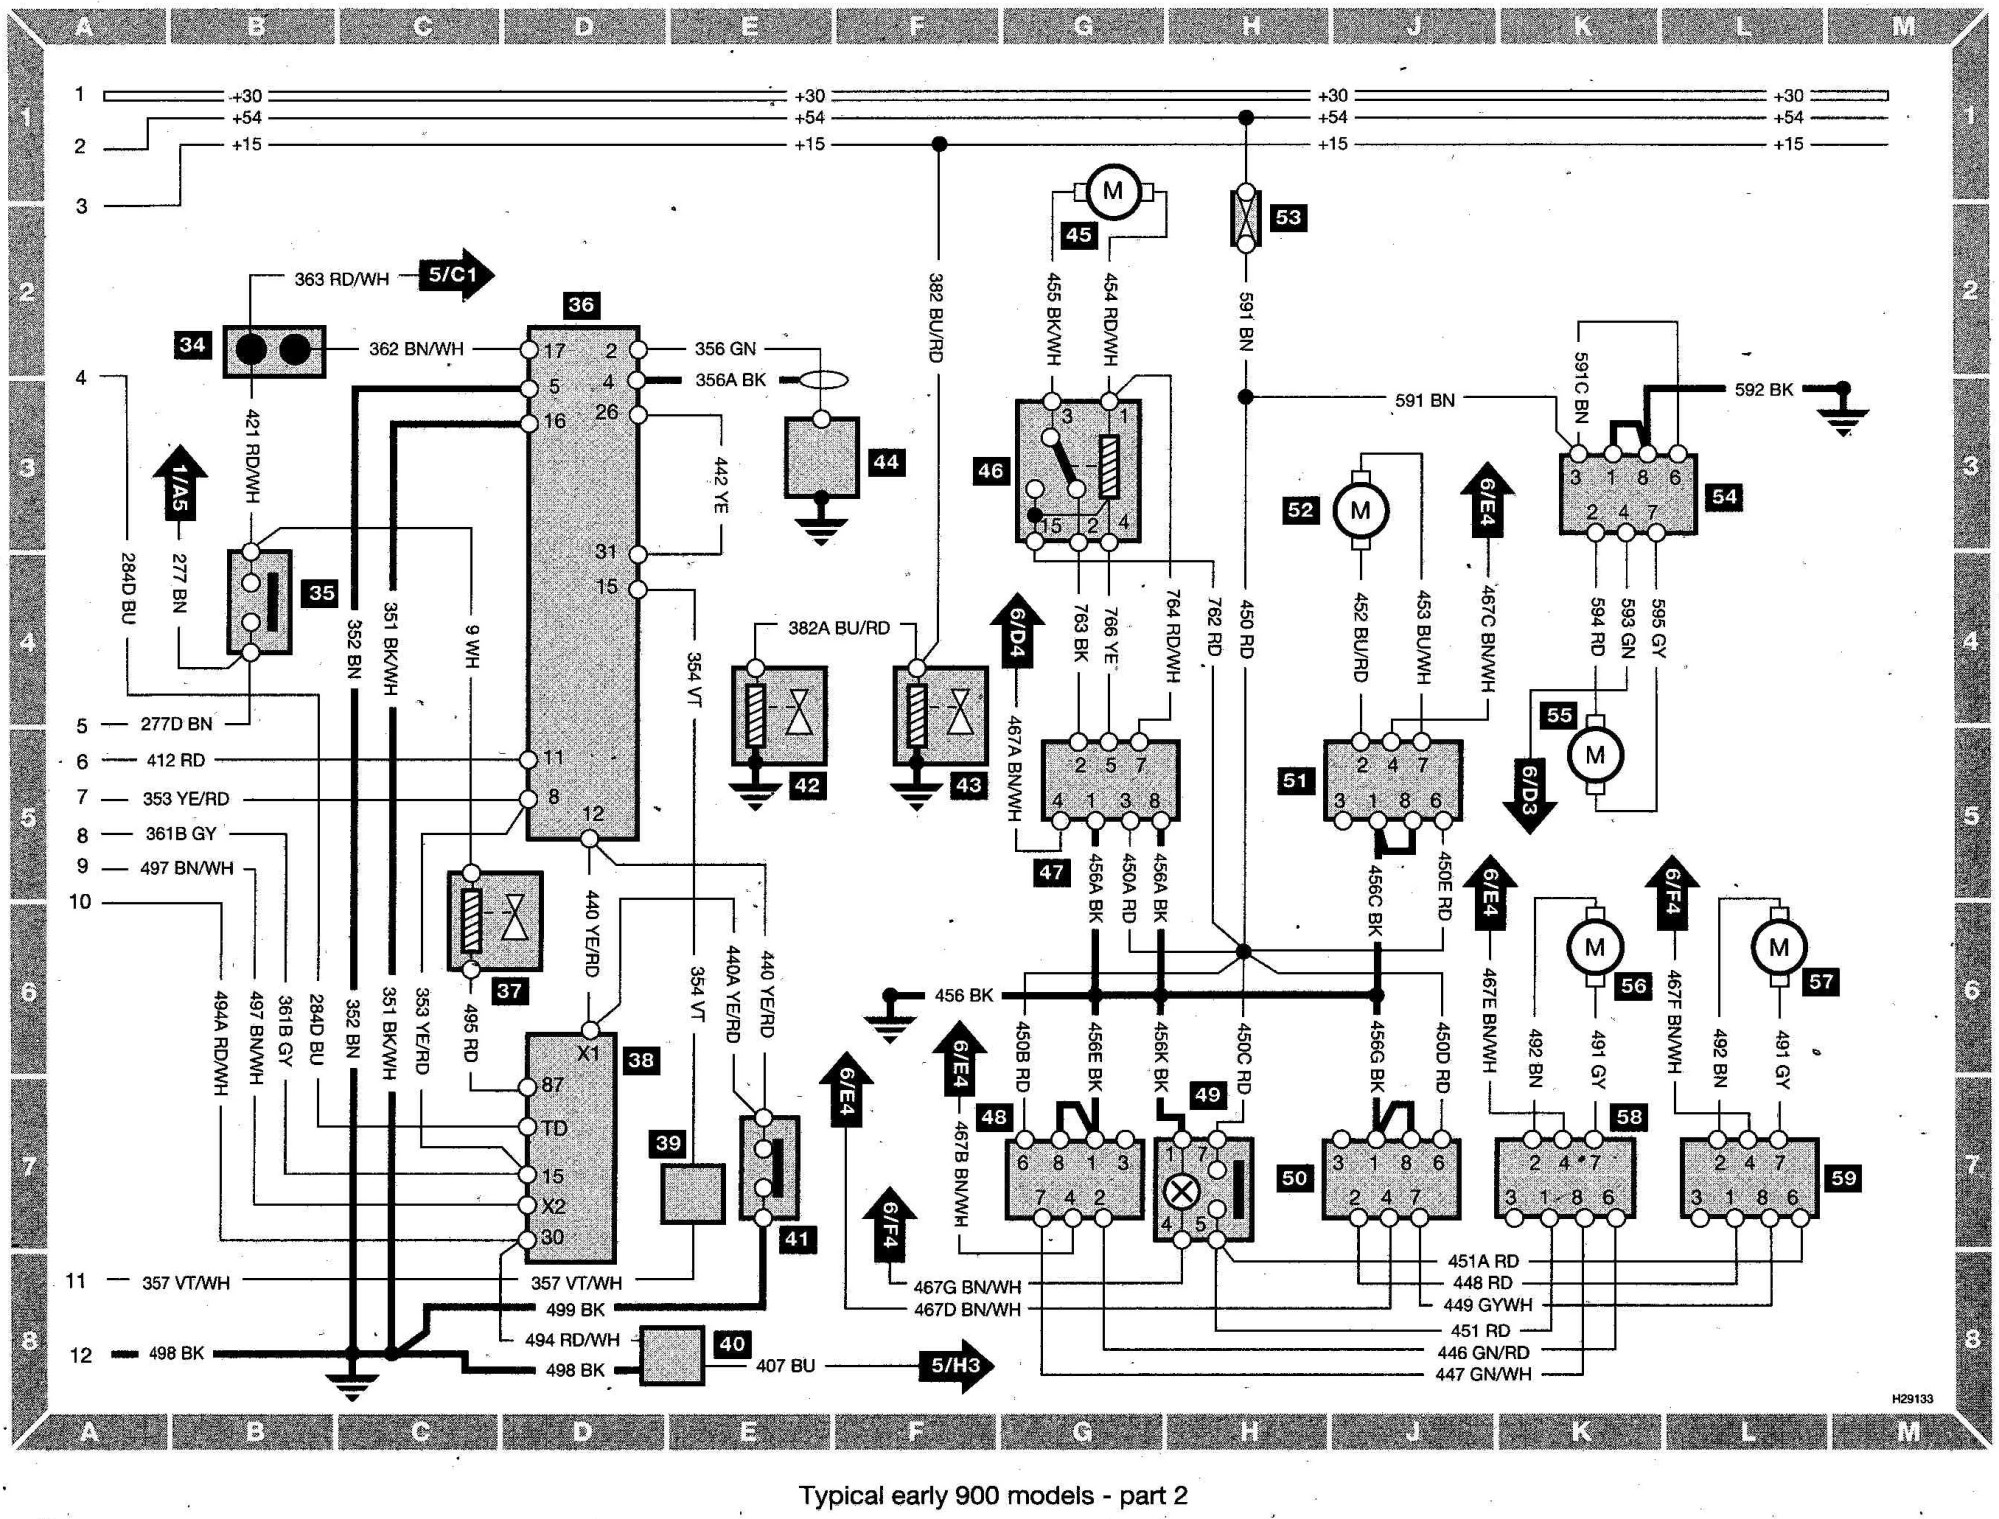 hight resolution of saab 900 fuse box diagram wiring diagram centre saab 900 fuse box diagram saab 900 fuse diagram